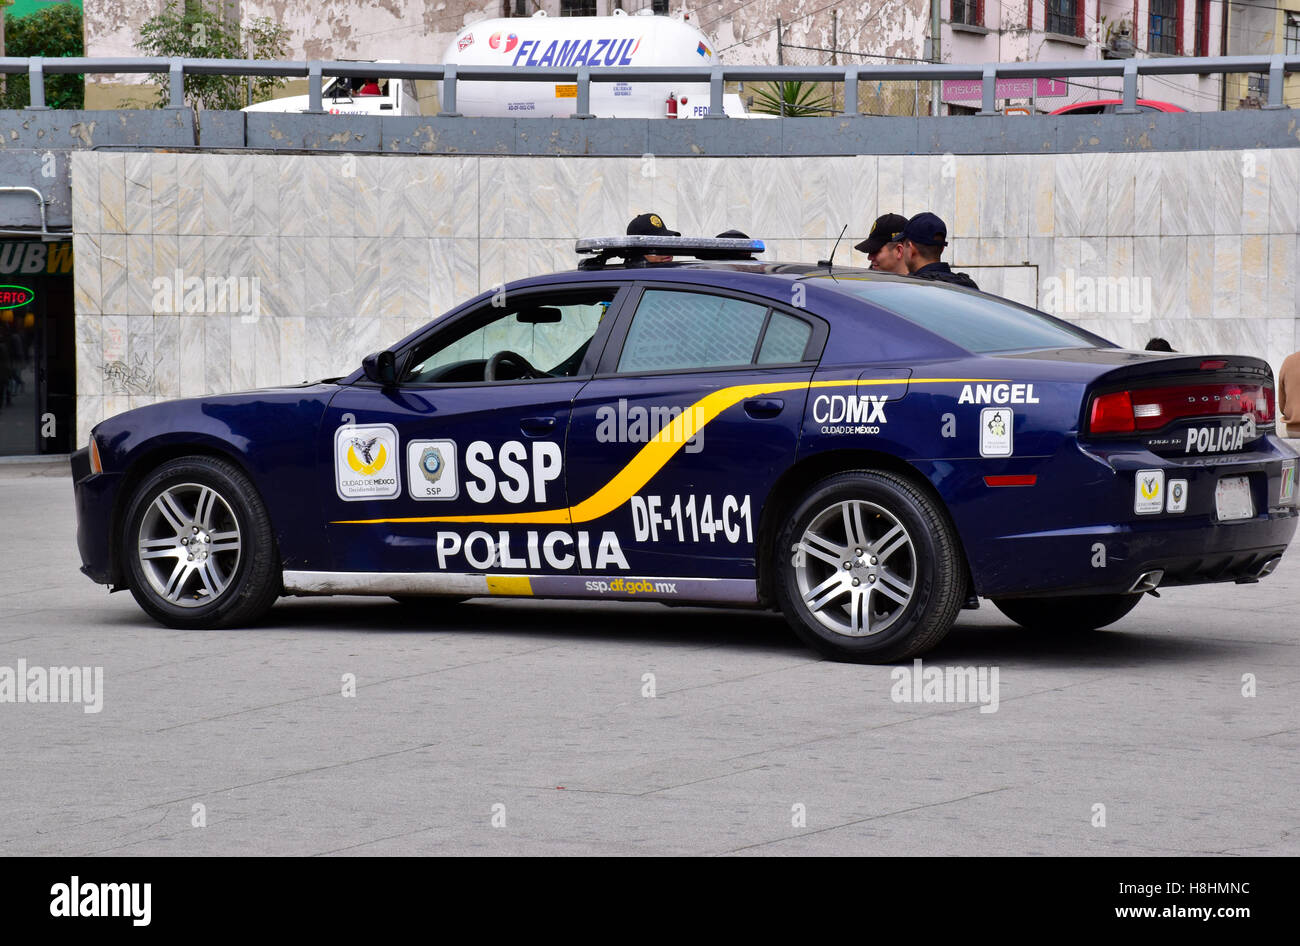 Police car and policement in Mexico City, D.F., Mexico City, Mexico Stock Photo